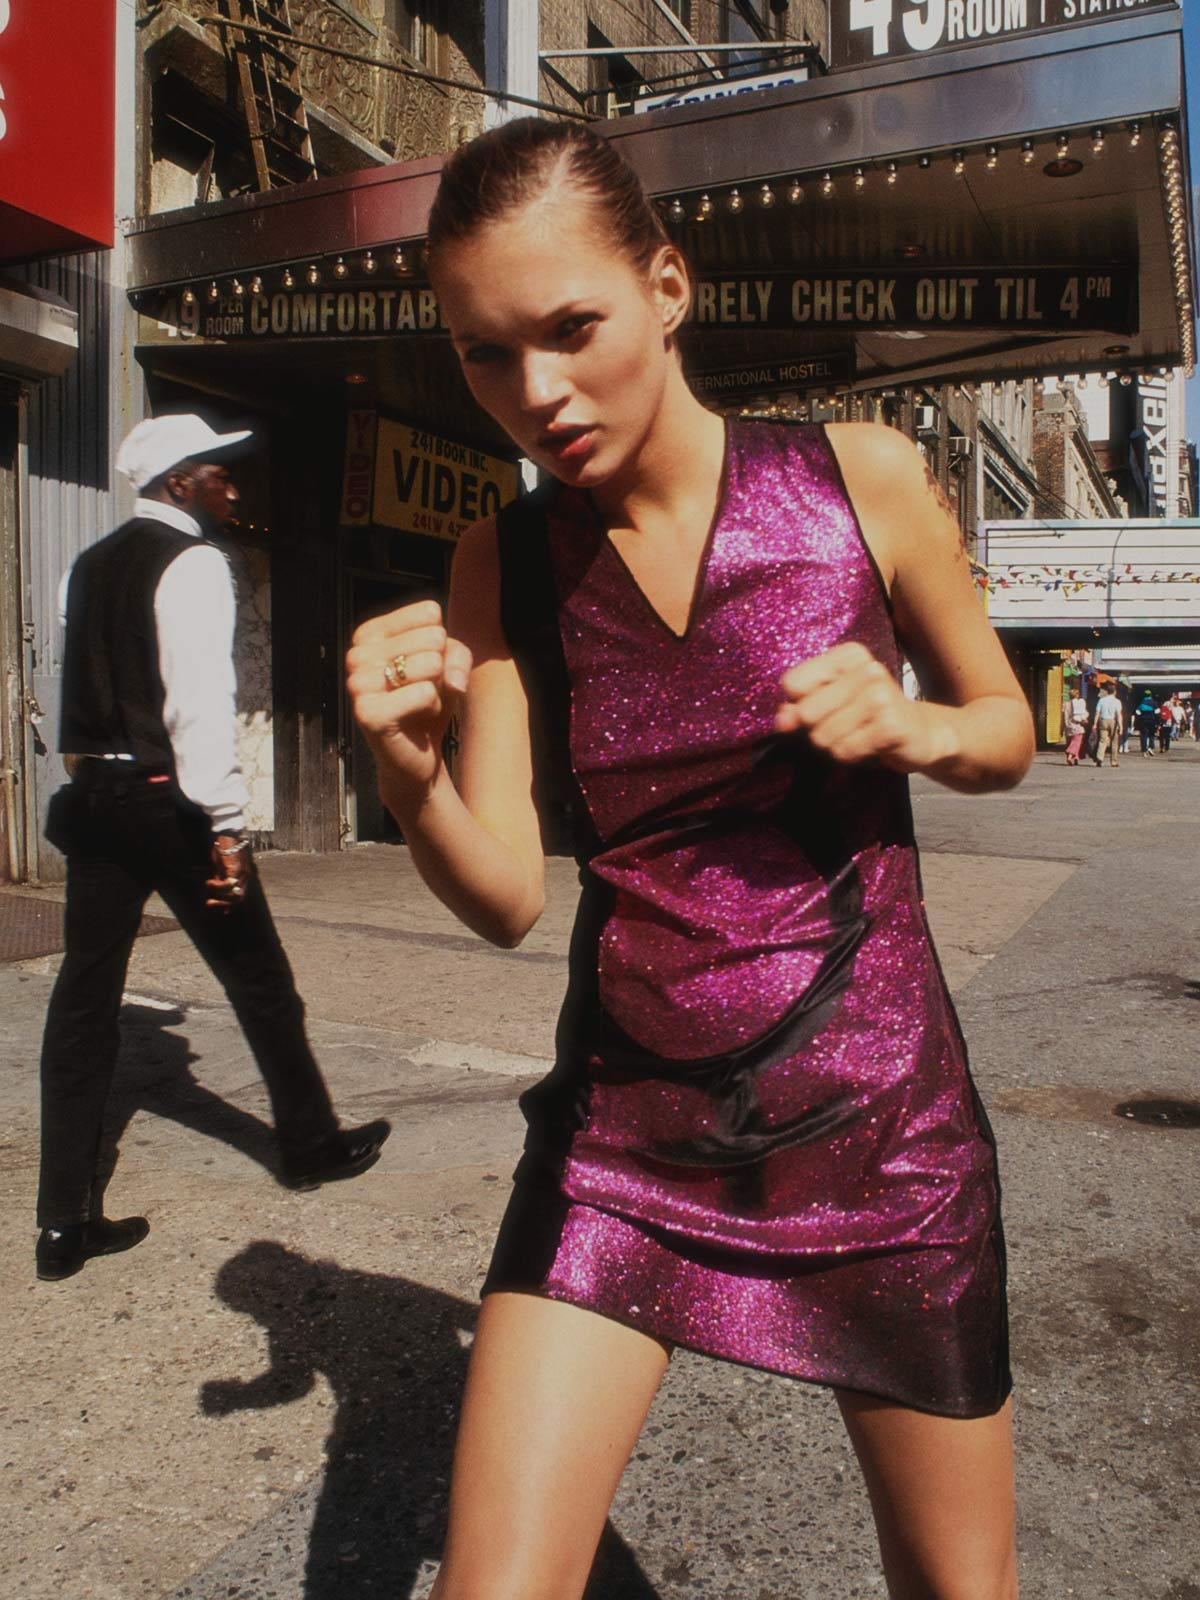 See 30 years of Glen Luchford's photography in this virtual gallery